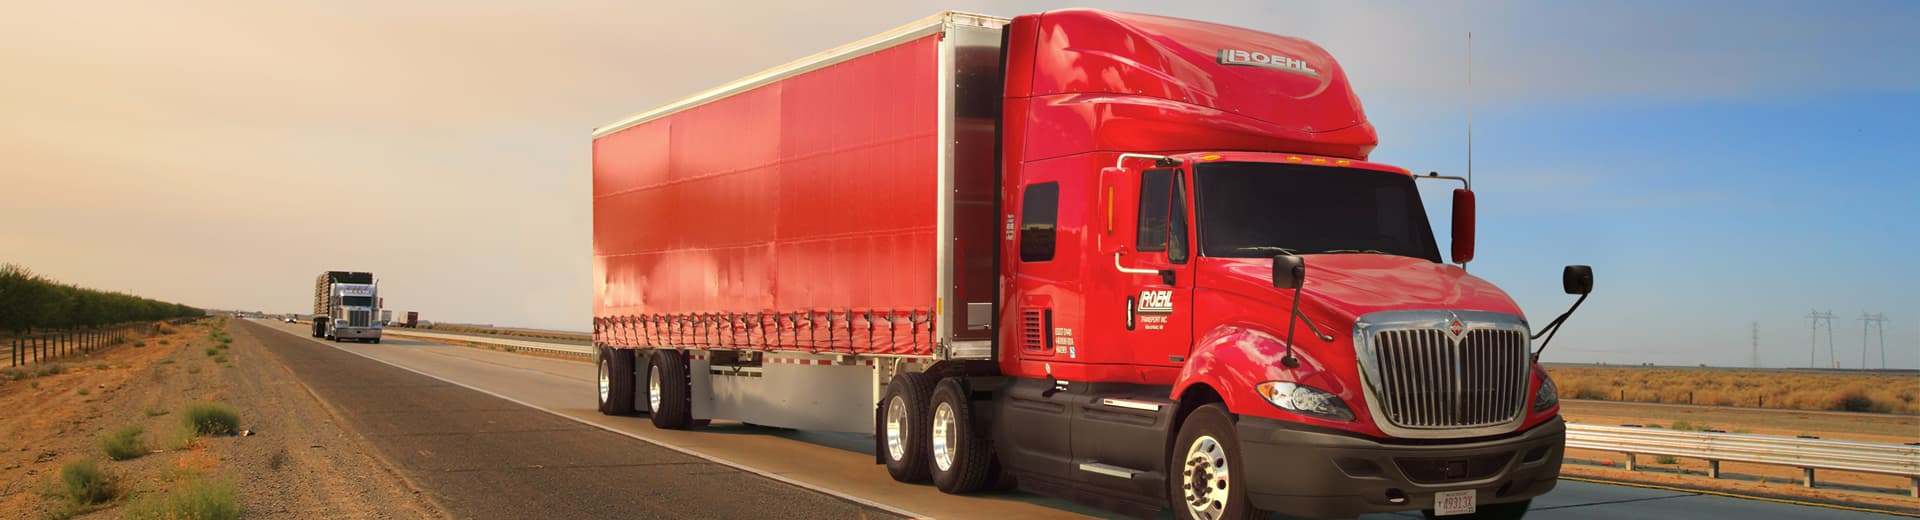 Curtainside Truckload Services | Roehl Transport | Roehl.Jobs